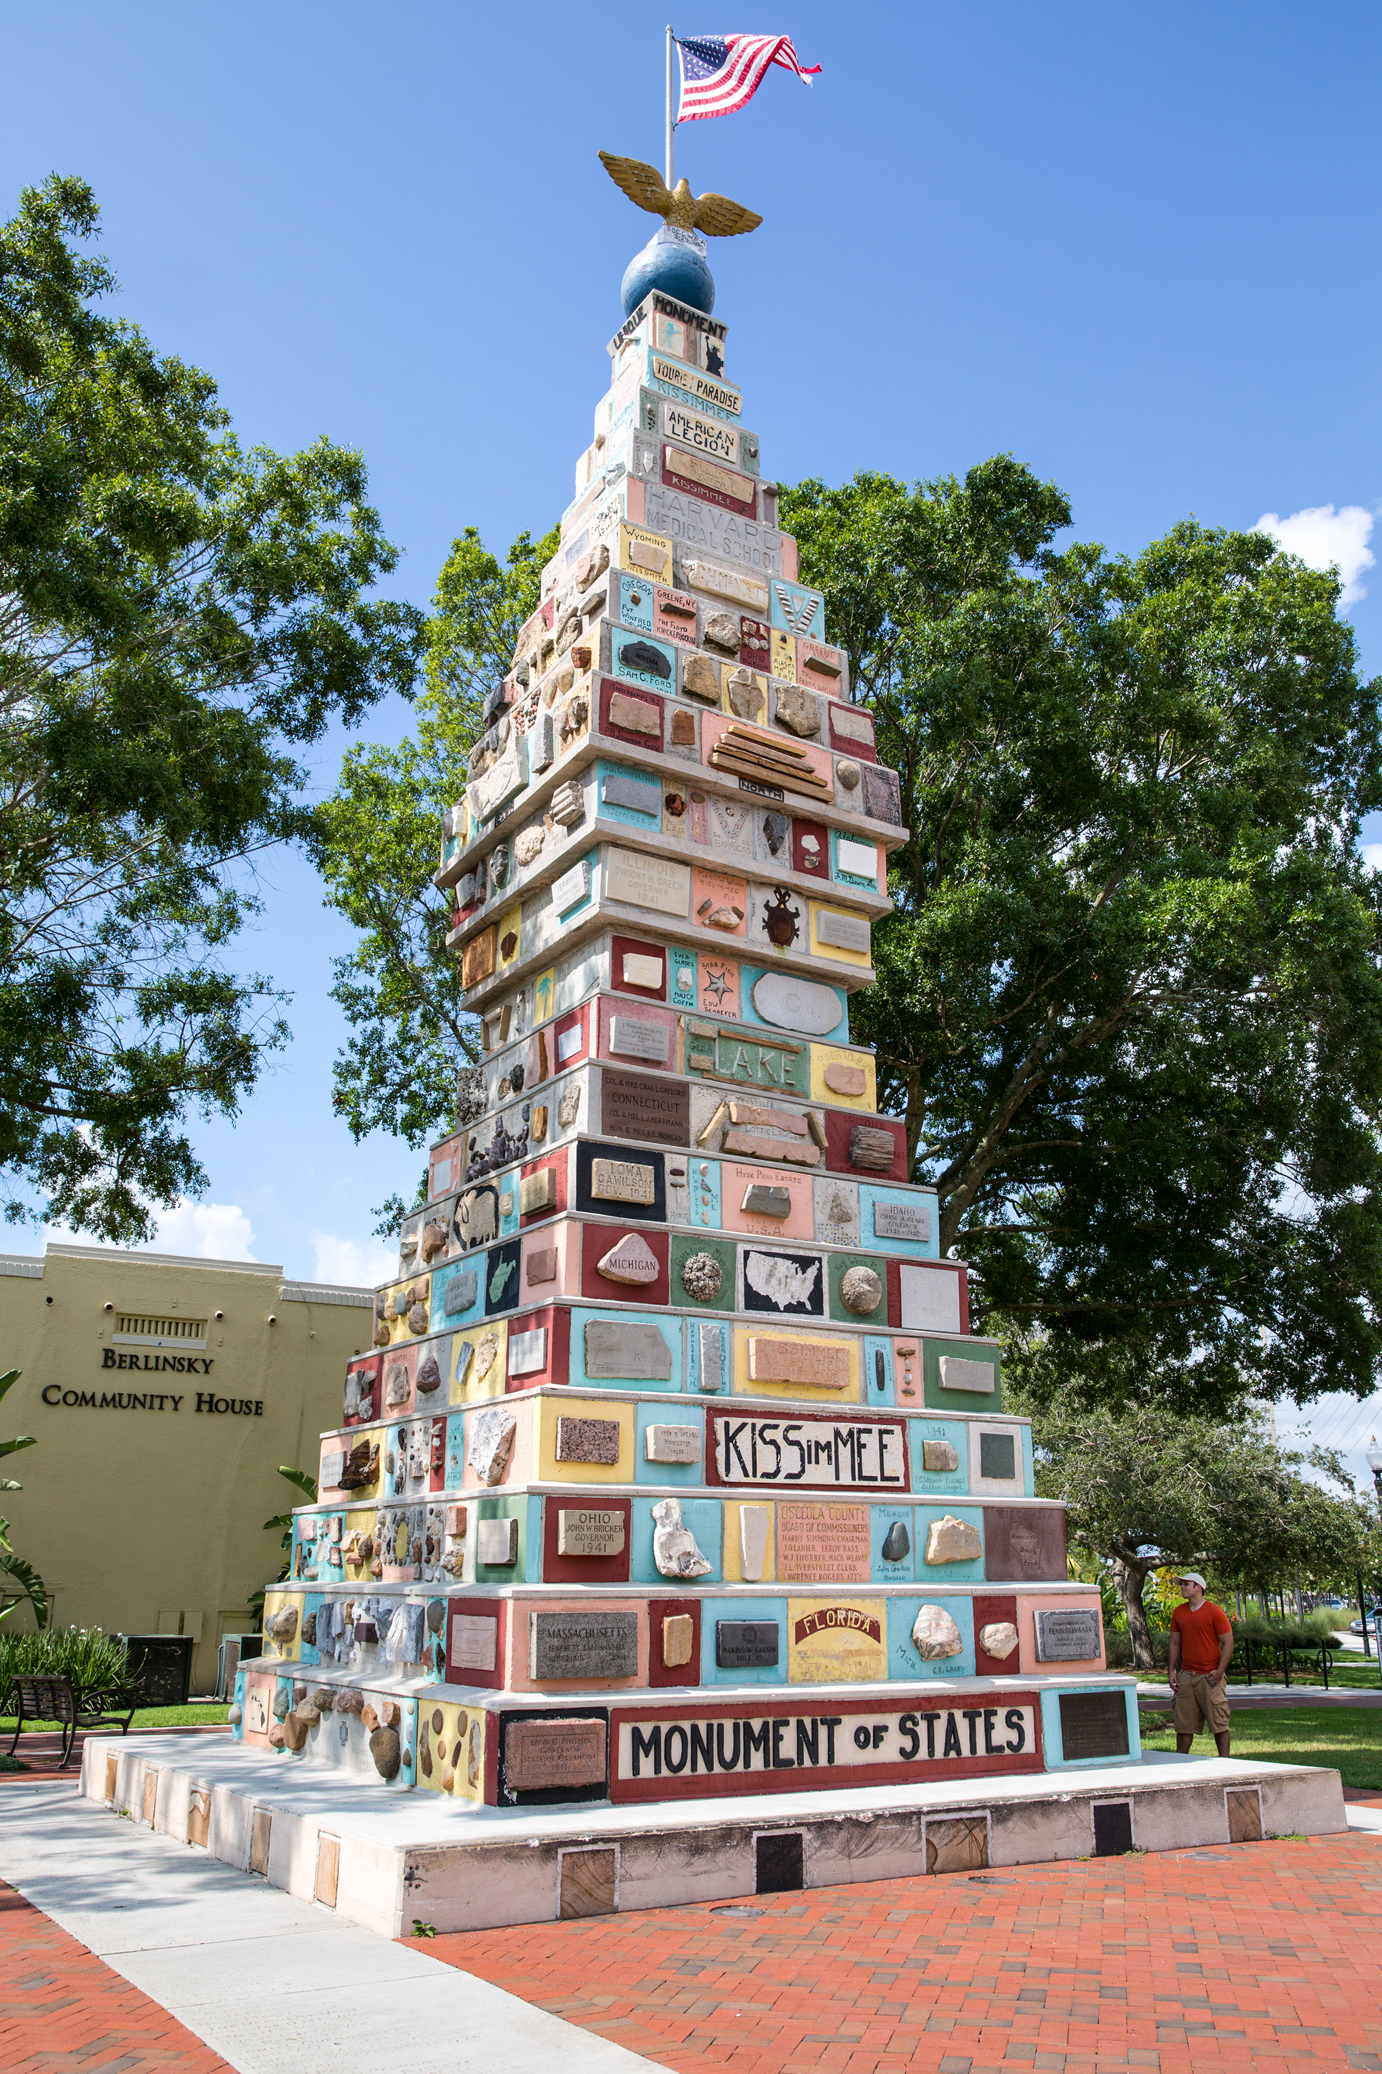 The Monument of States in Kissimmee, Florida